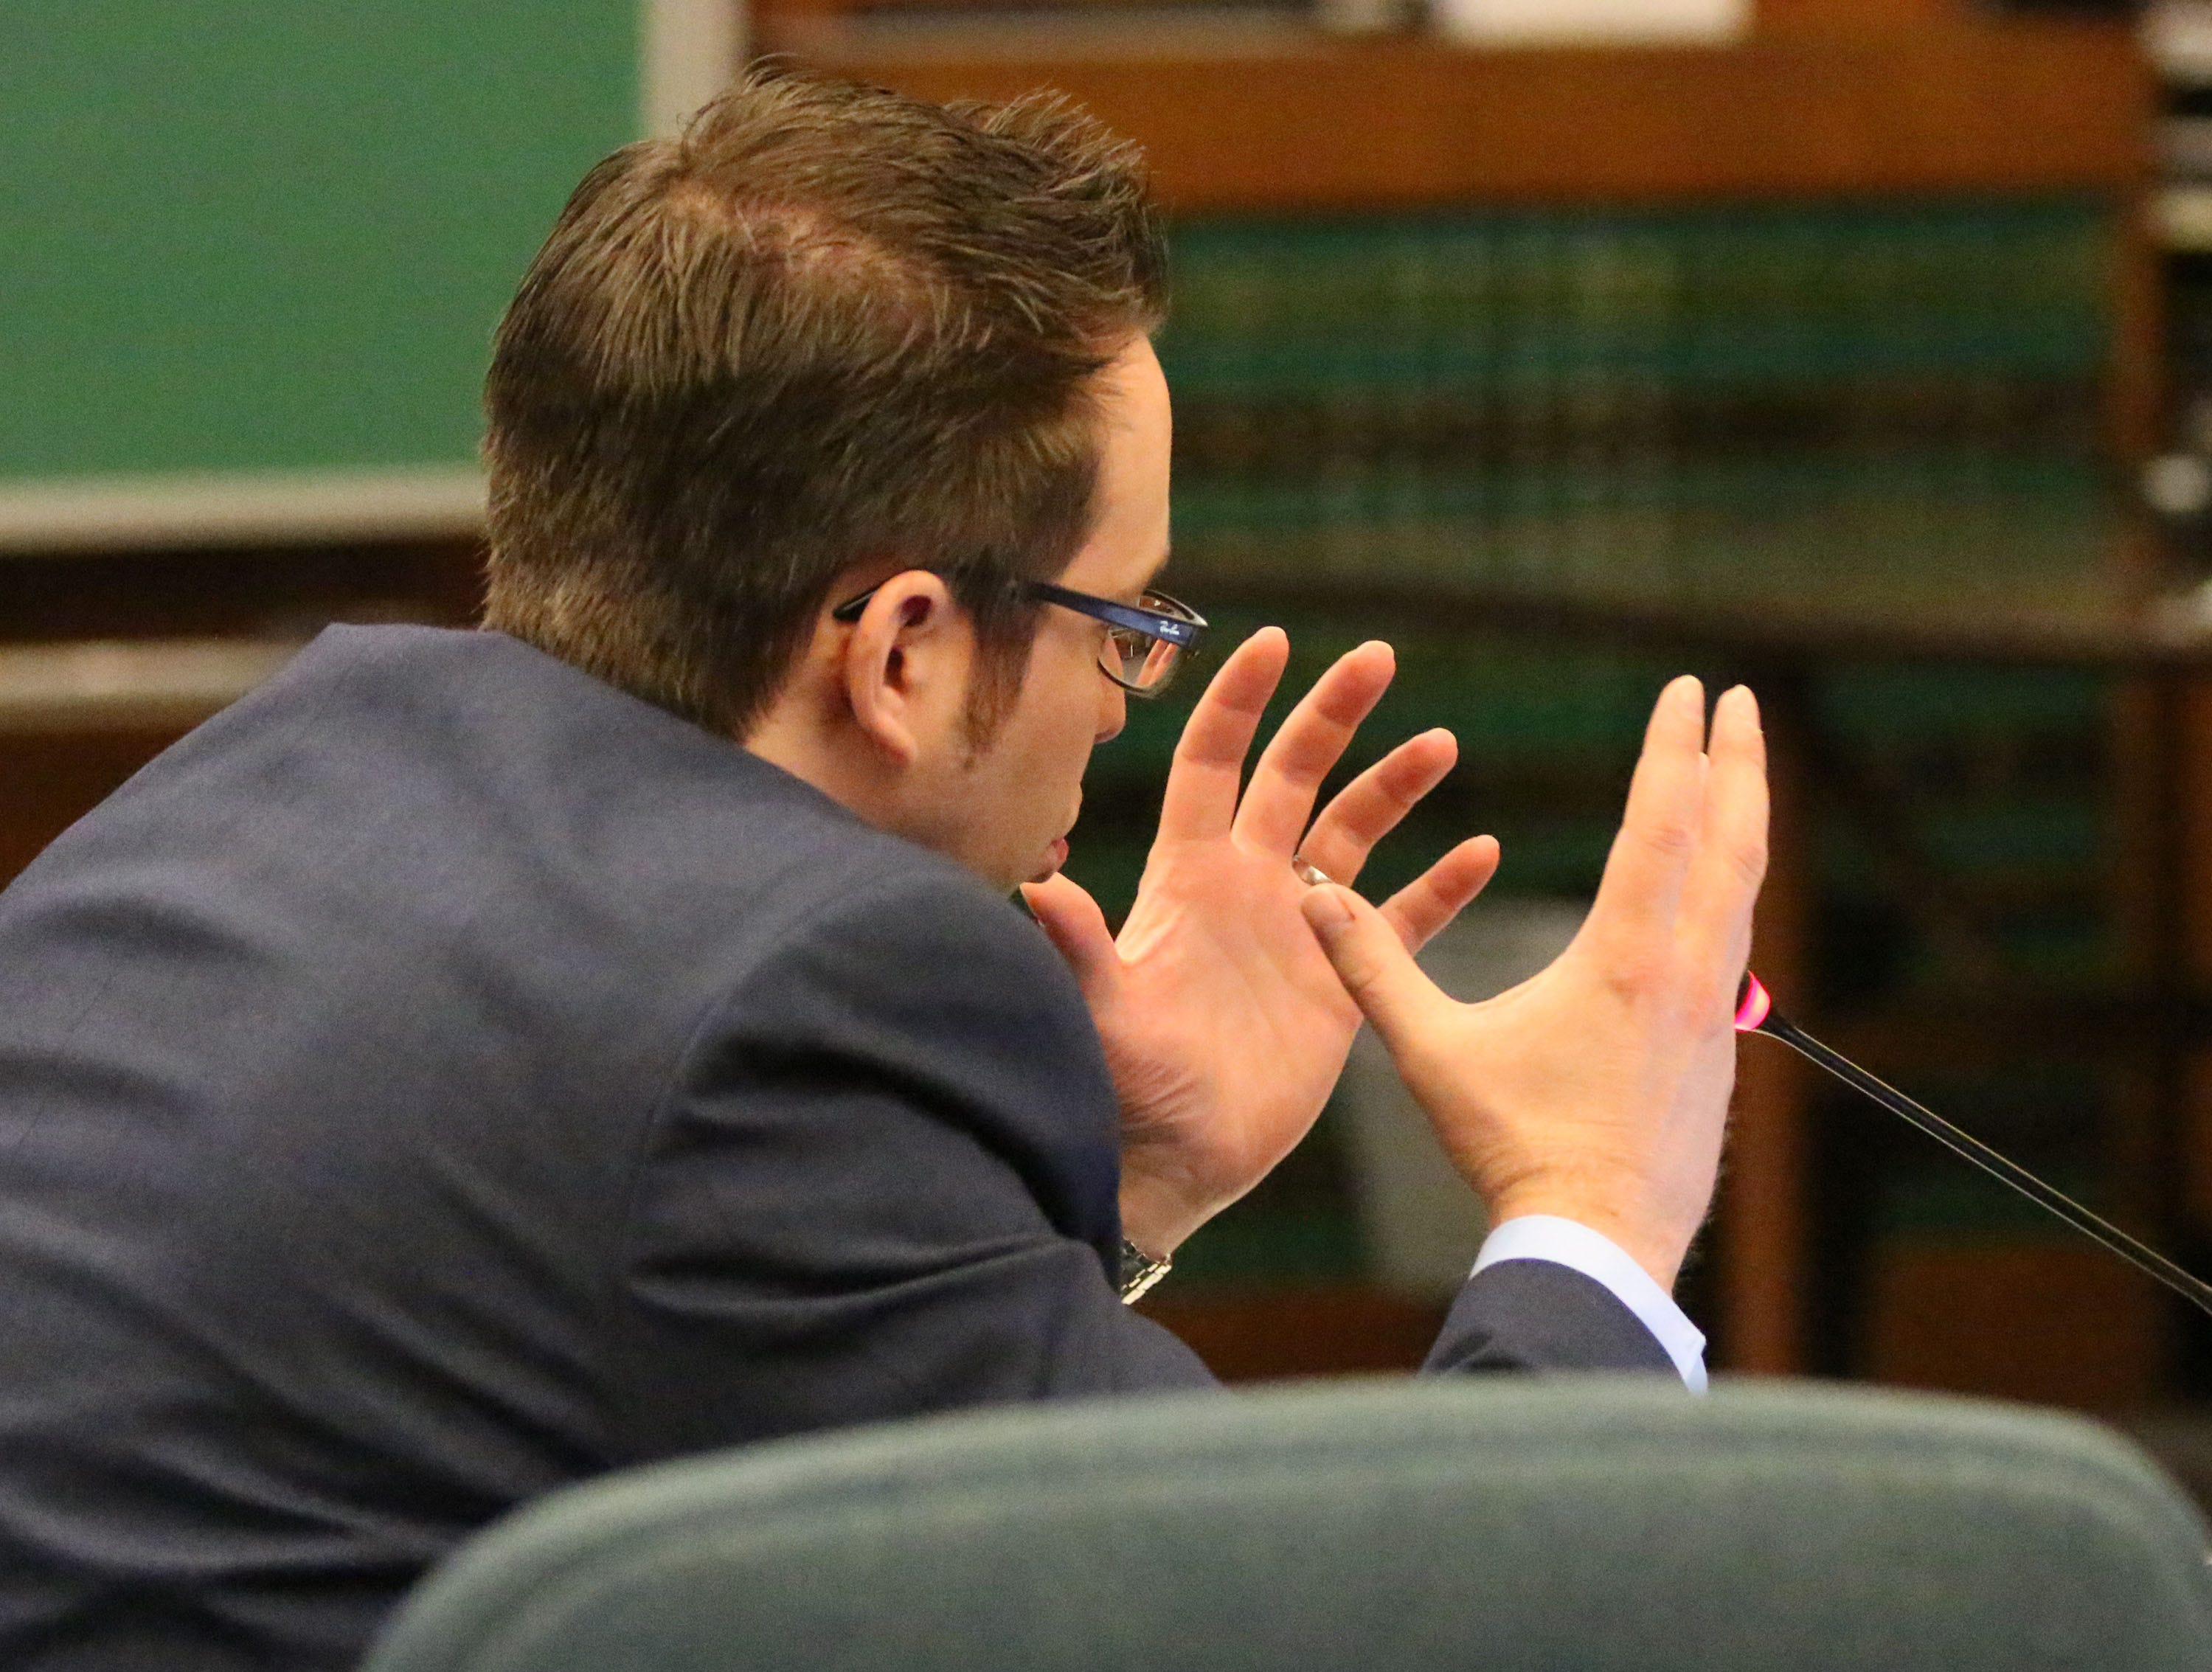 Sheboygan County District Attorney Joel Urmanski gestures while speaking about Breanna Mikula about her involvement in the Kinship Companions kennel case in Sheboygan County Circuit Court Branch 1, Tuesday, October 16, 2018, in Sheboygan, Wis